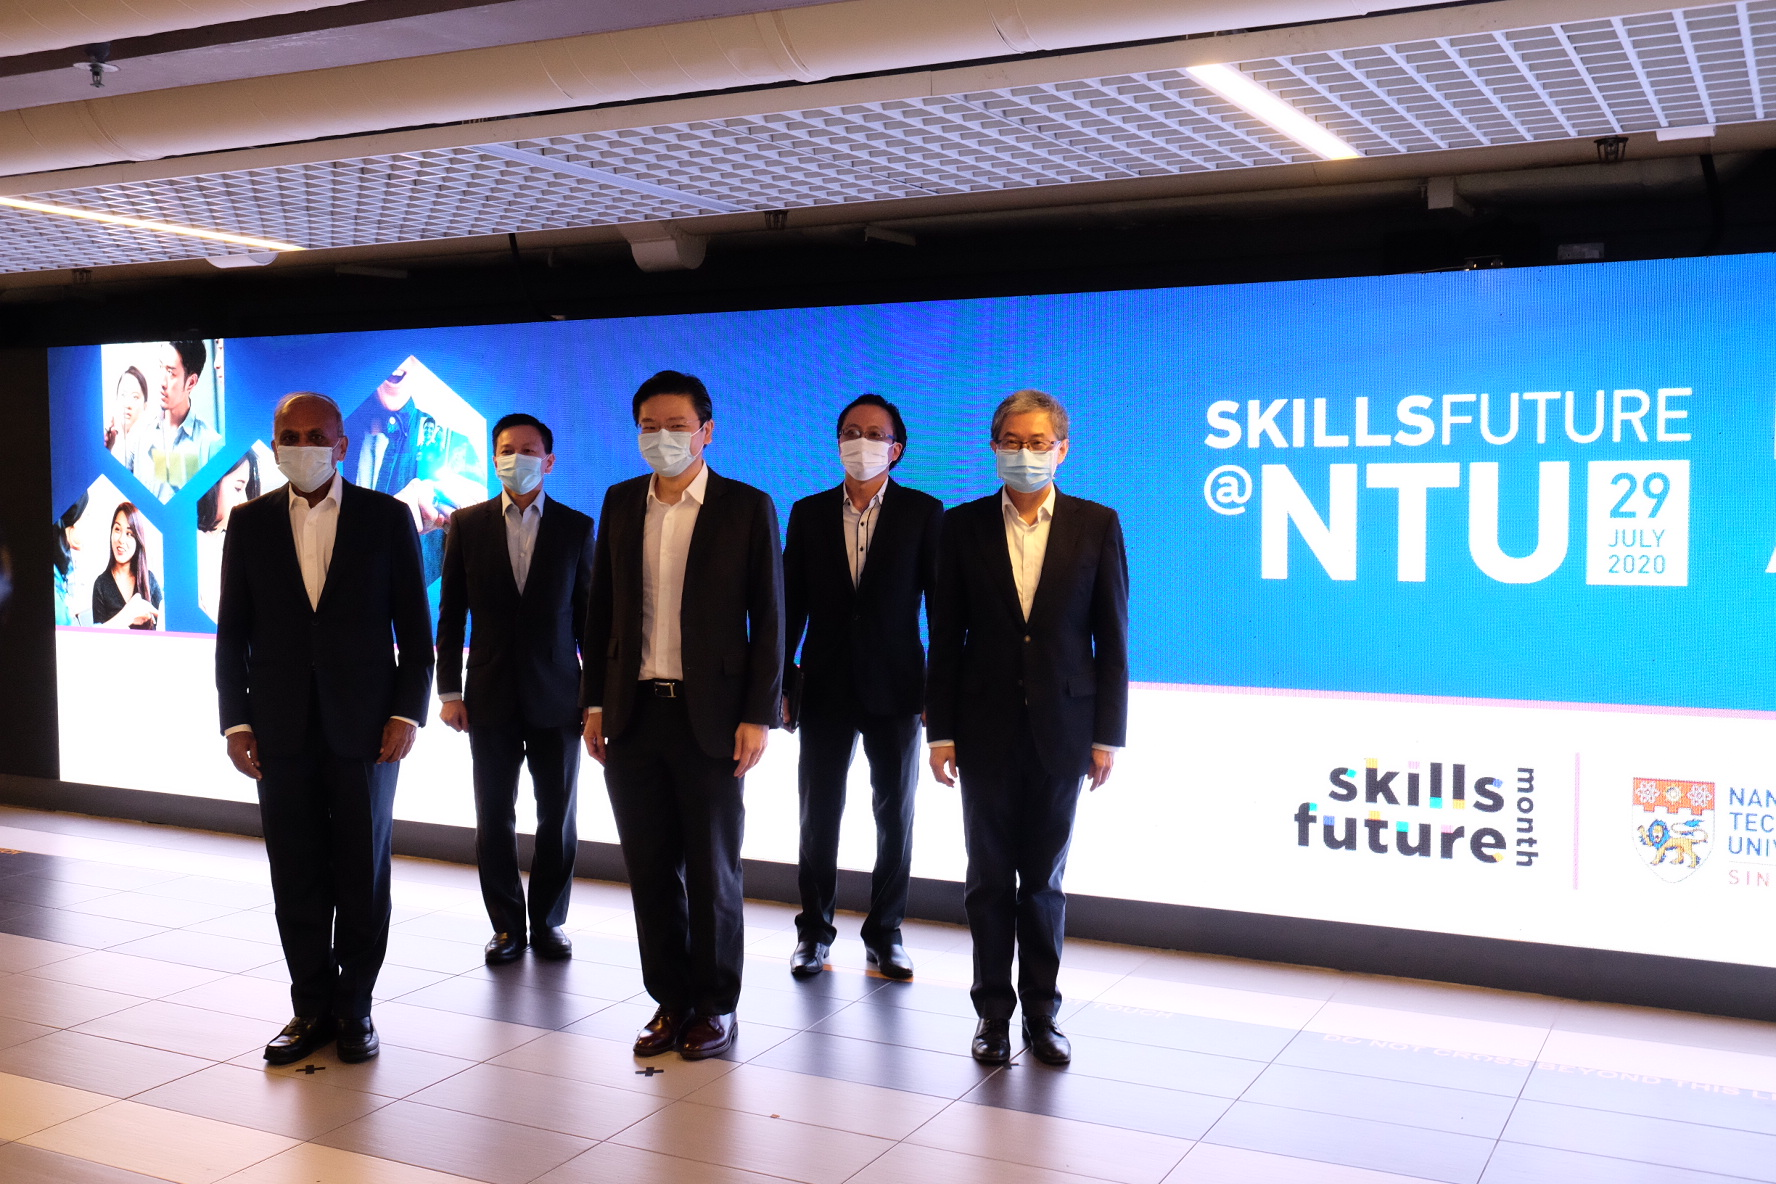 The launch of SkillsFuture@NTU was graced by Education Minister Mr Lawrence Wong - his first visit to NTU after his recent appointment. Photo courtesy: NTU